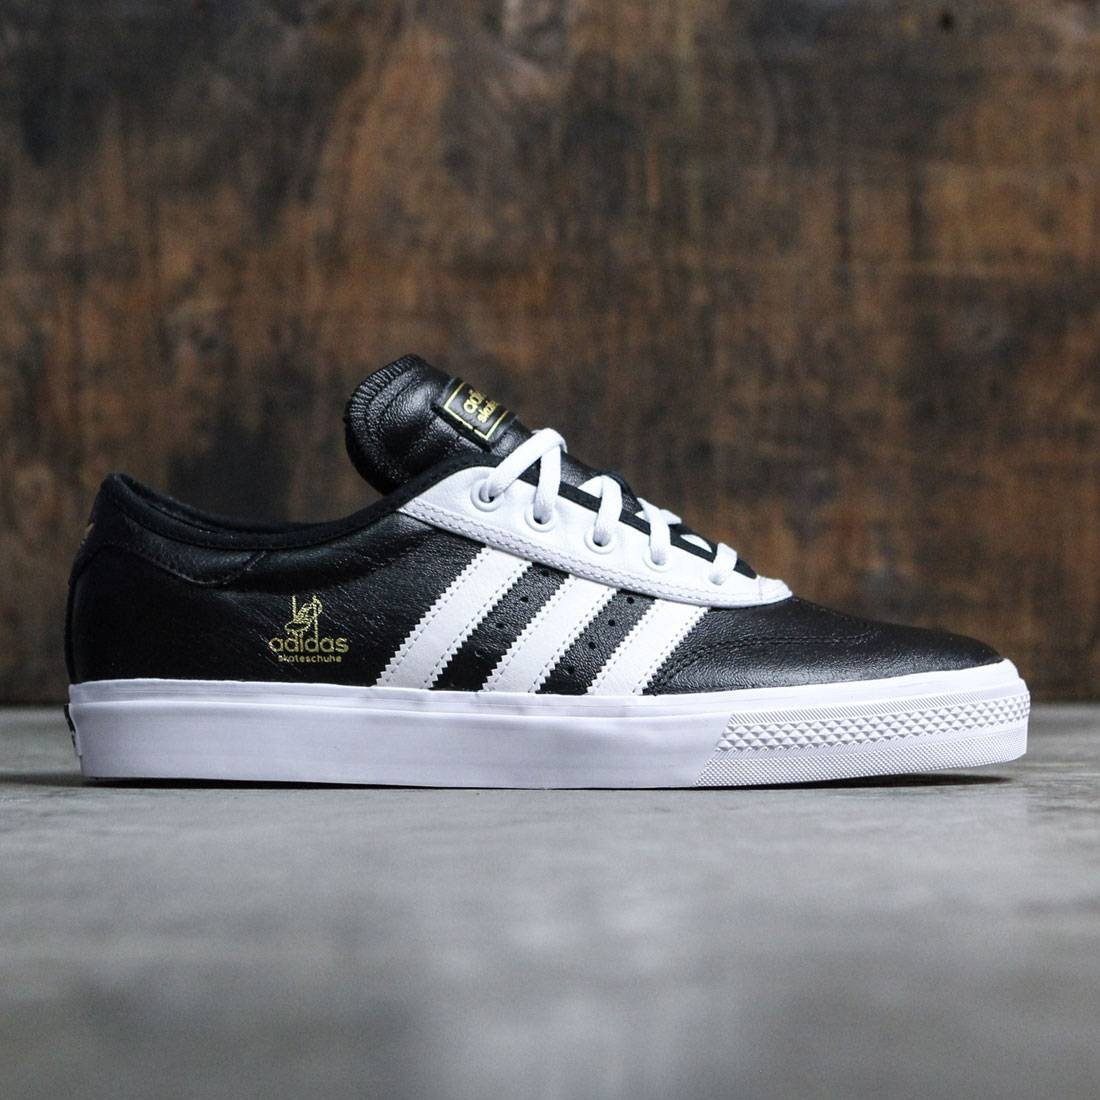 Adidas Adiease Universal ADV Shoes | Products | Adidas